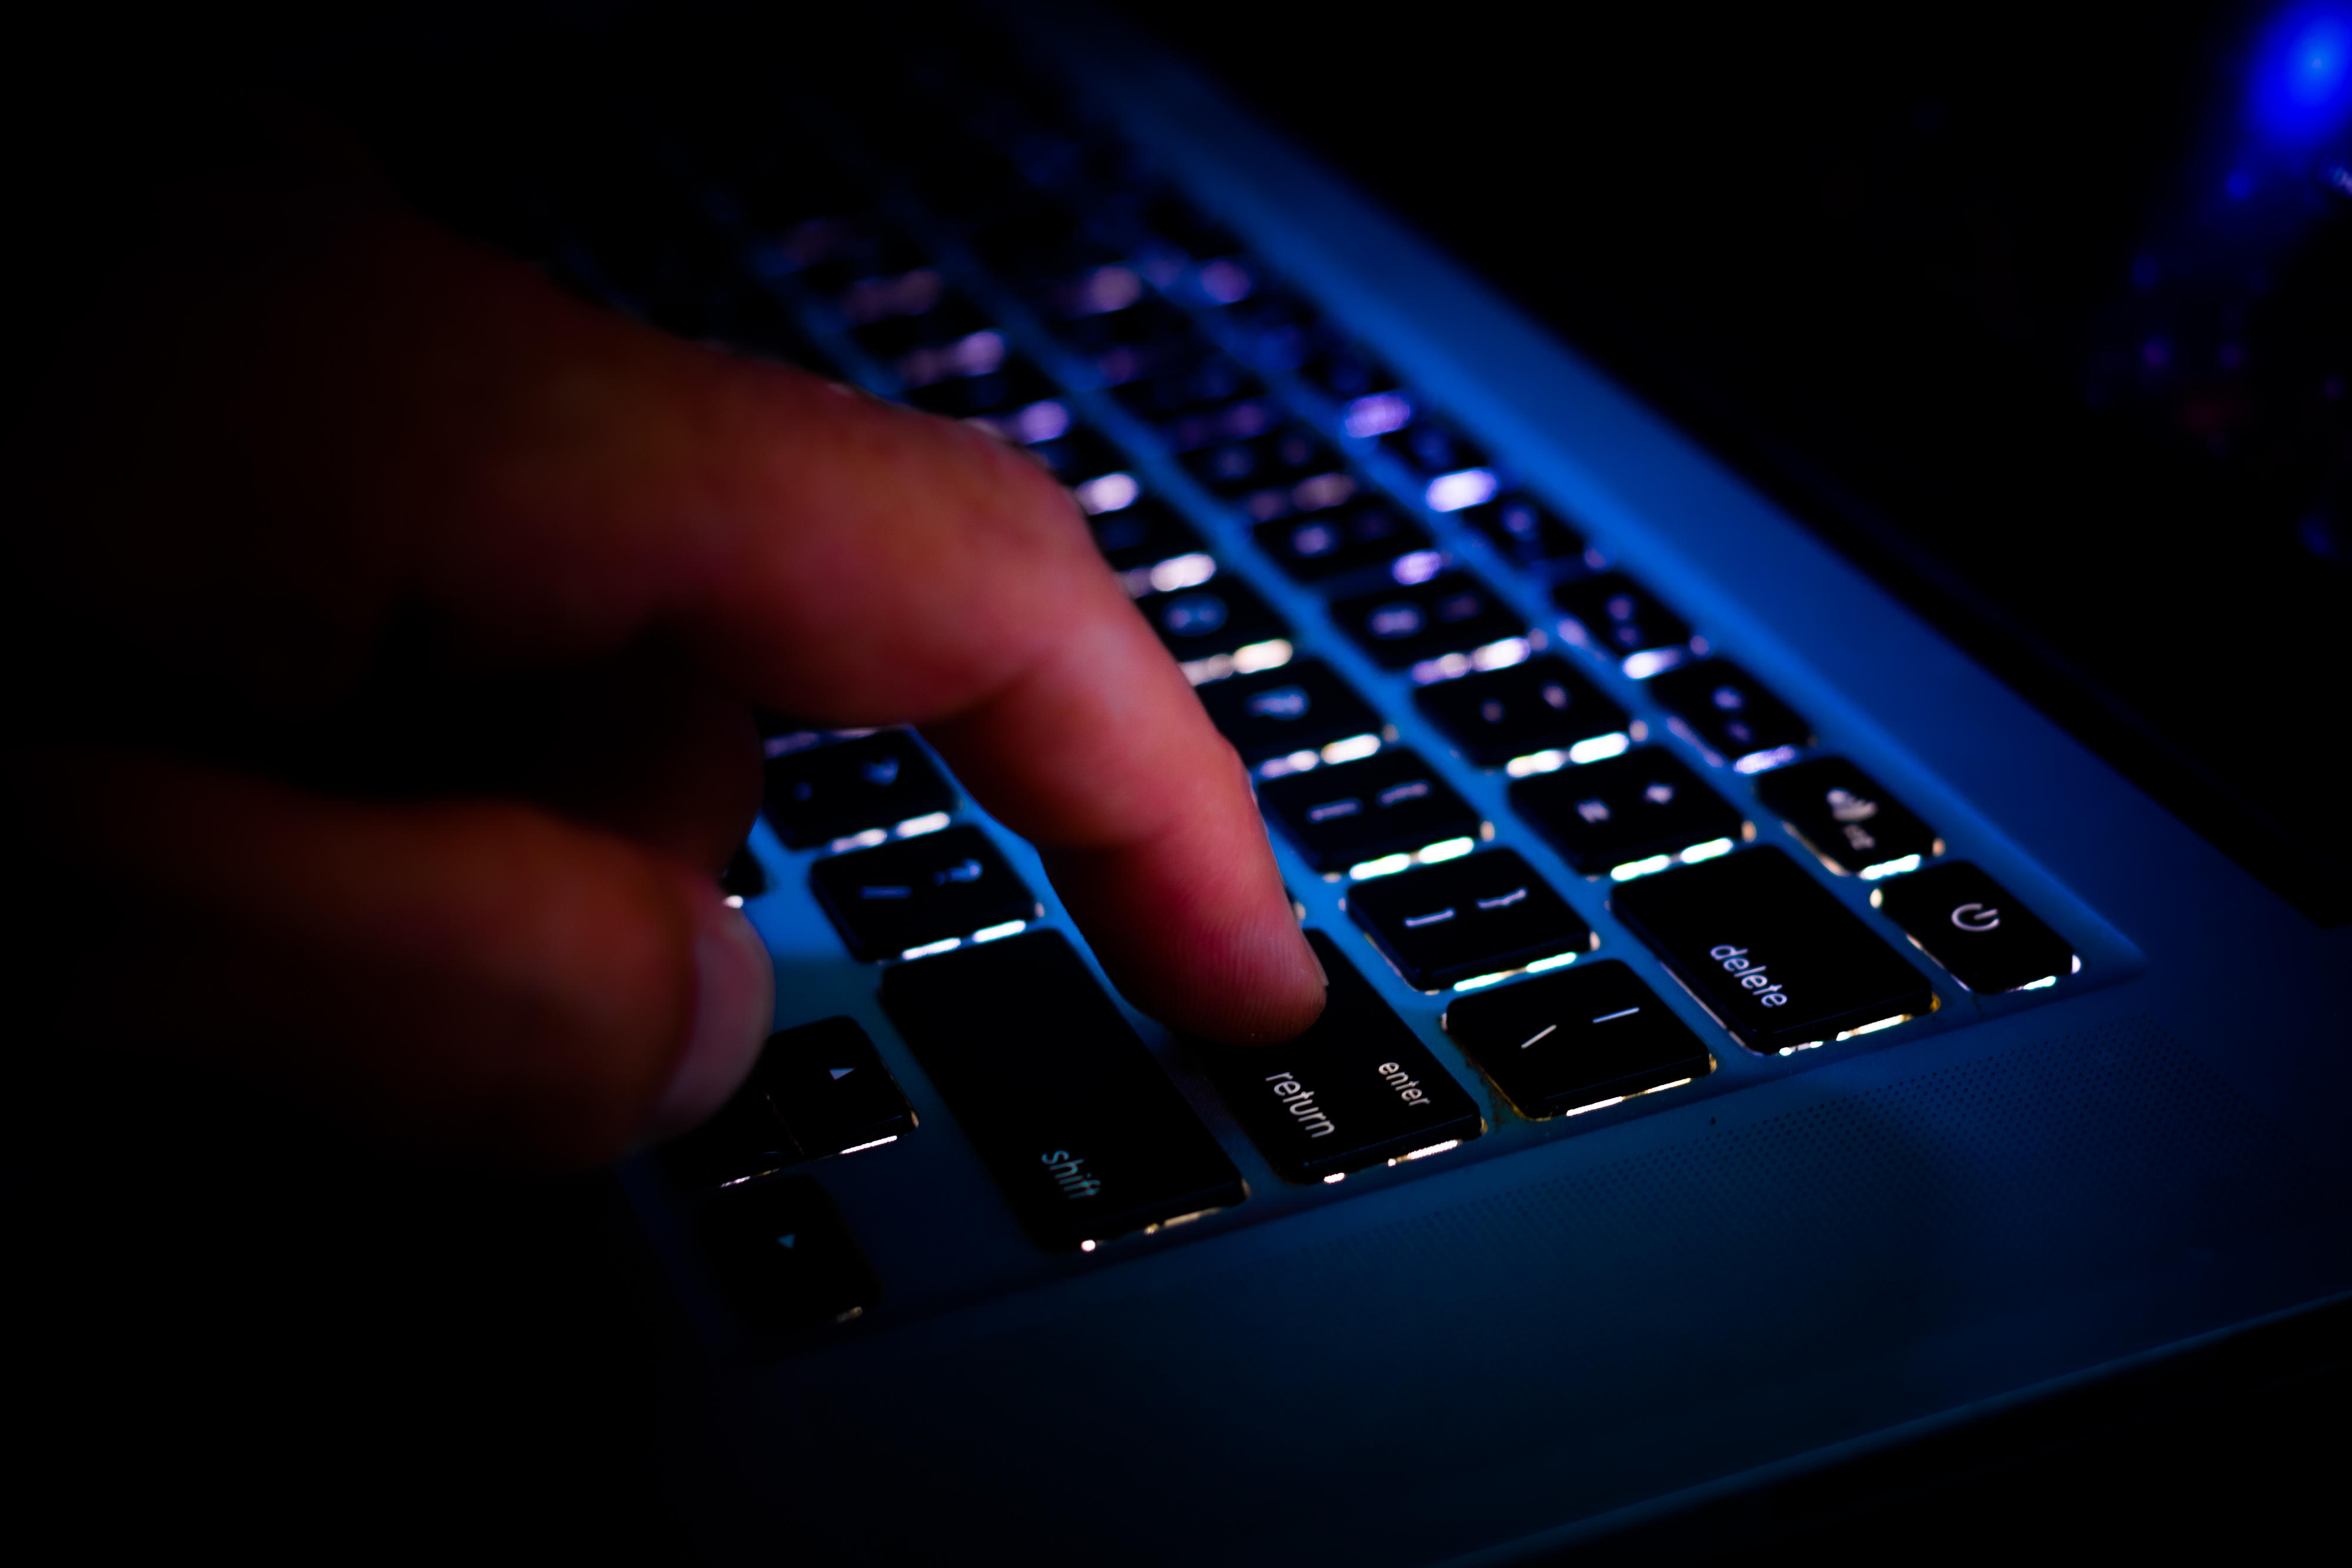 keyboard-security-privacy-laptop-hacking-7923